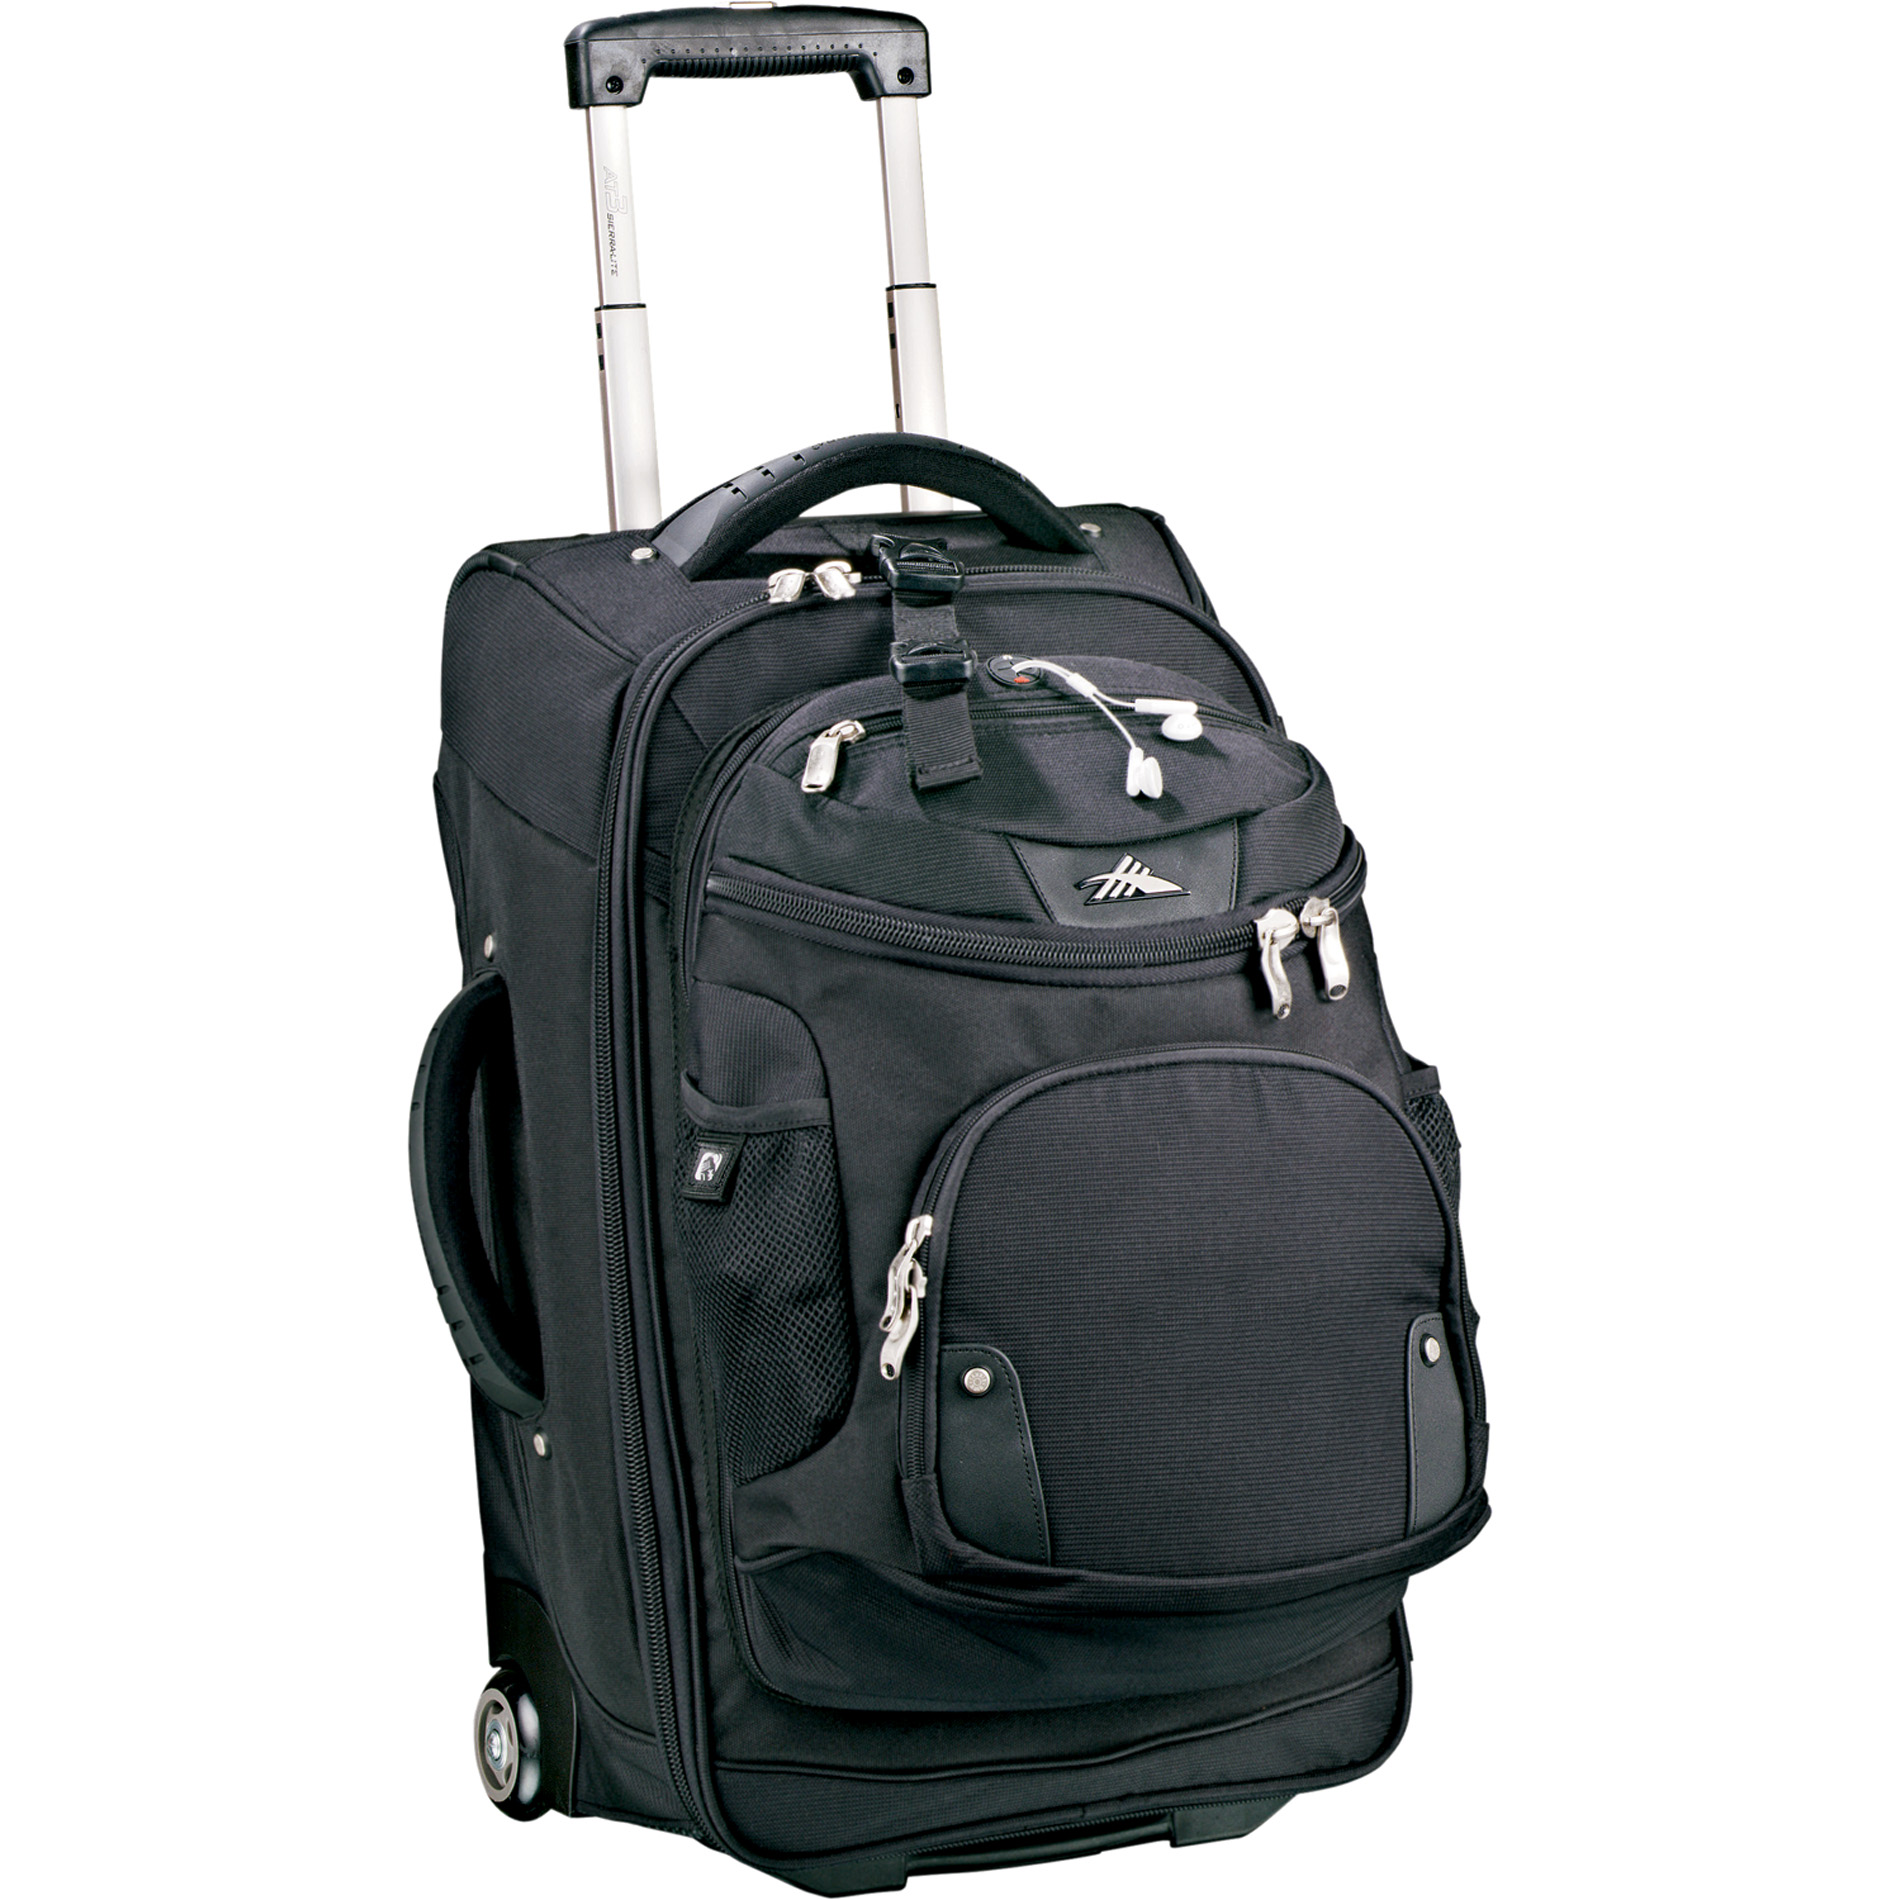 High Sierra 8050-33 - 22 Wheeled Carry-On with DayPack